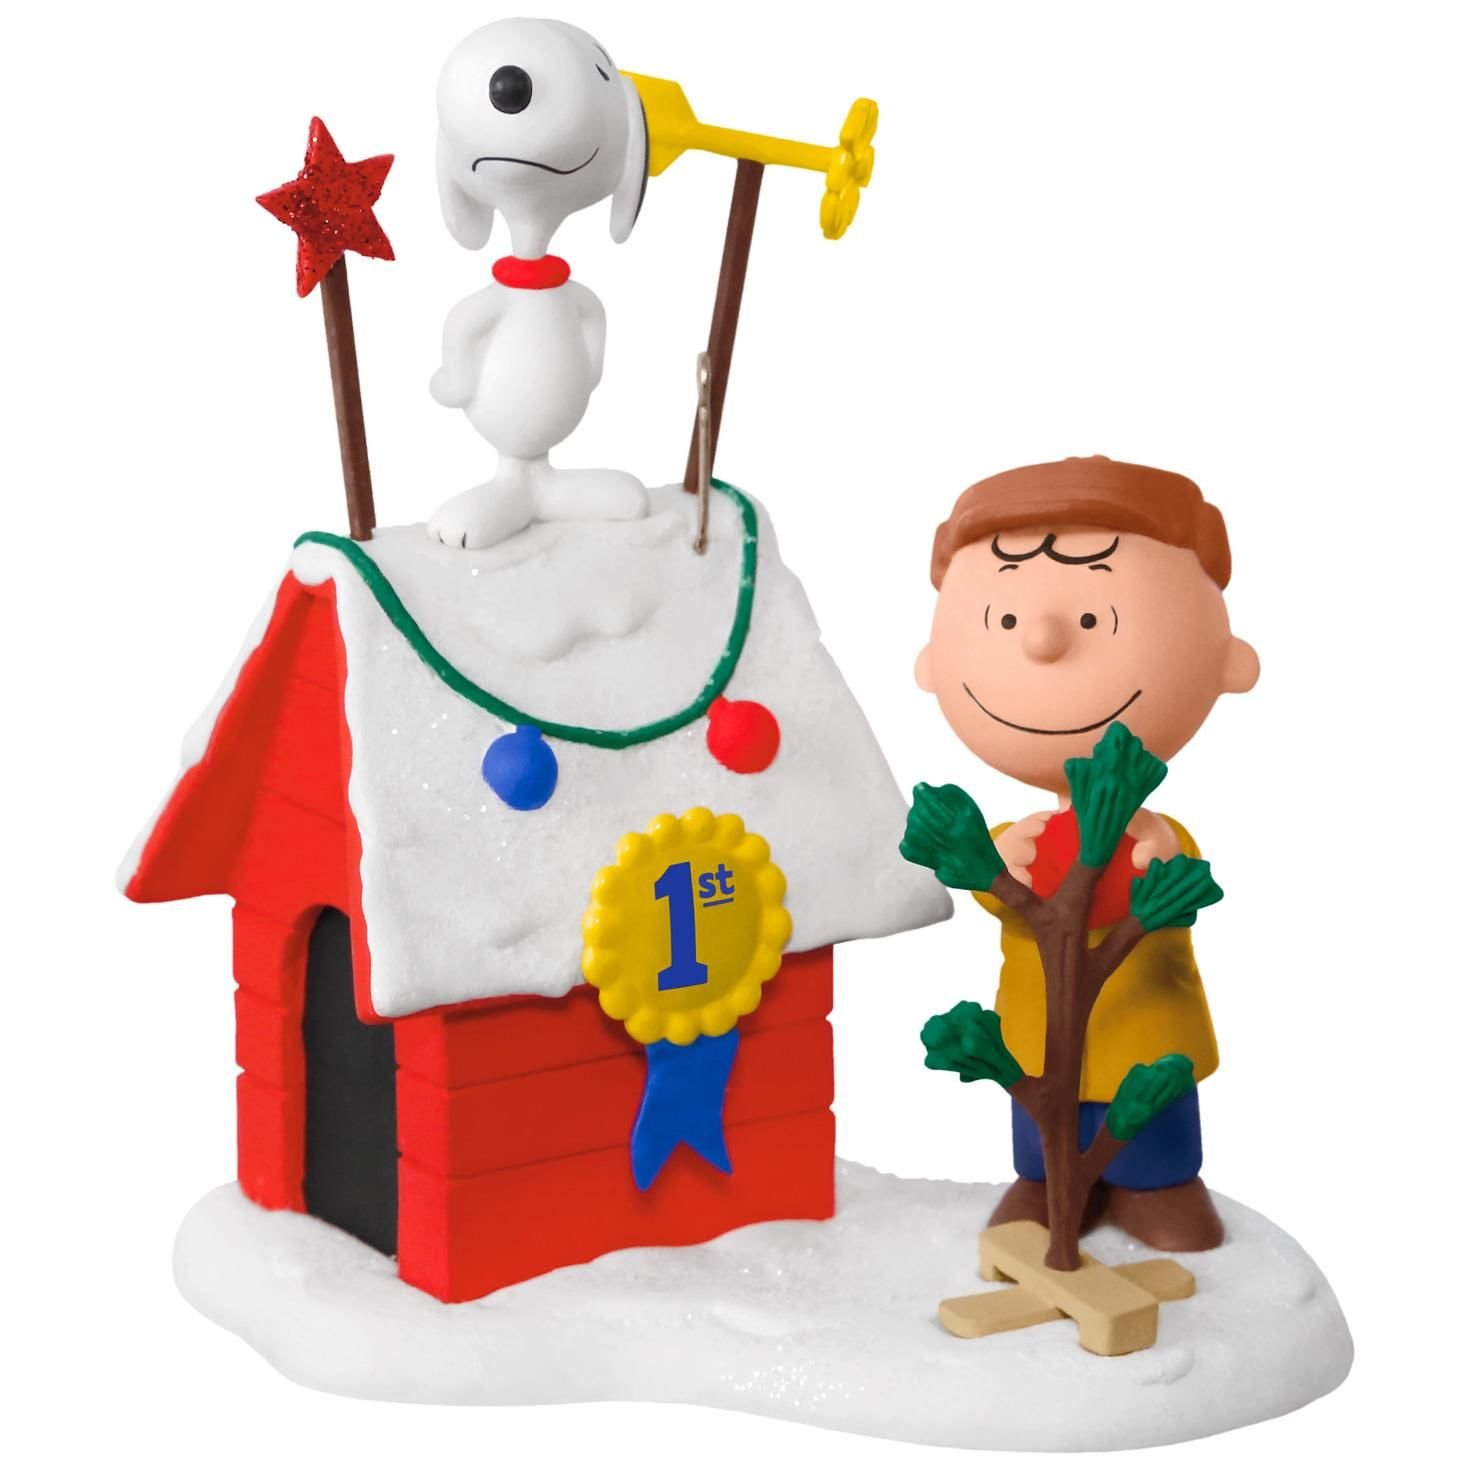 PEANUTS Charlie Brown and Snoopy Decked-Out Doghouse Sound Ornament With Light Movies & TV